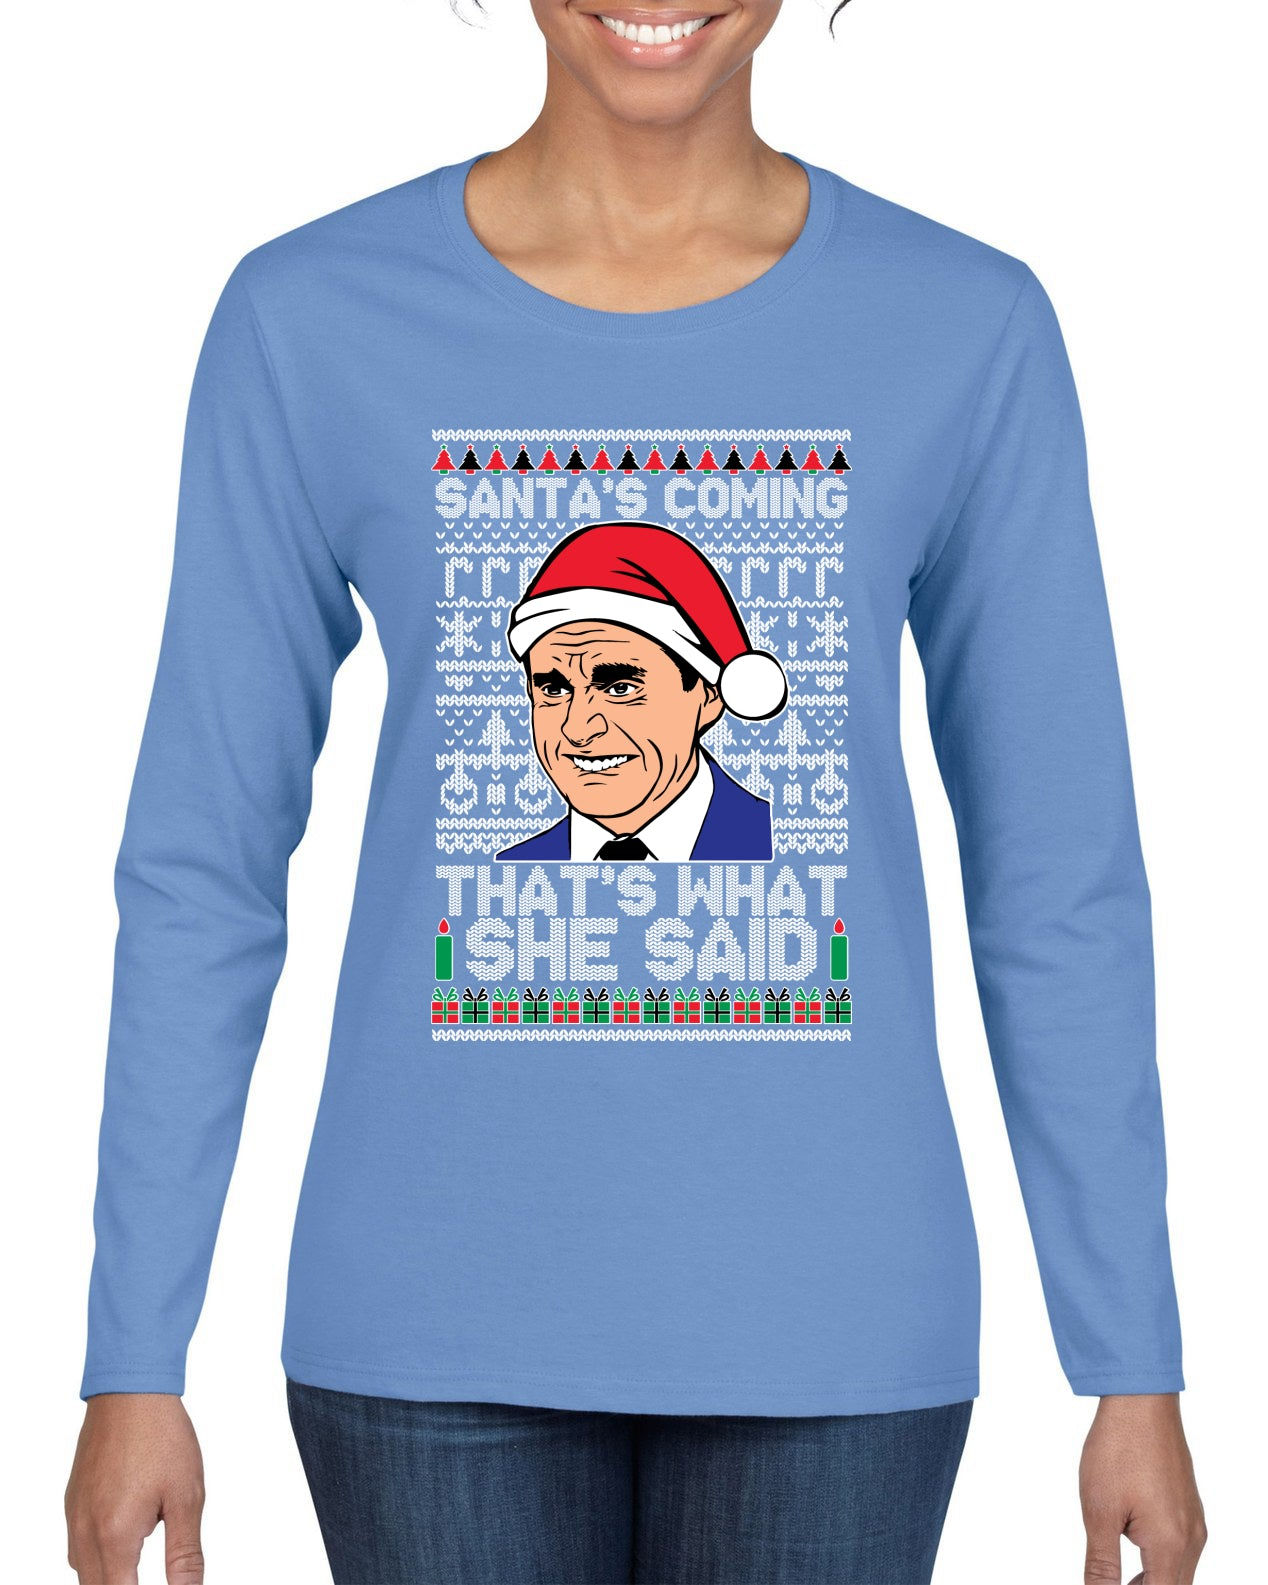 Santas Coming That's What She Said Michael Scott Ugly Christmas Sweater Womens Graphic Long Sleeve T-Shirt